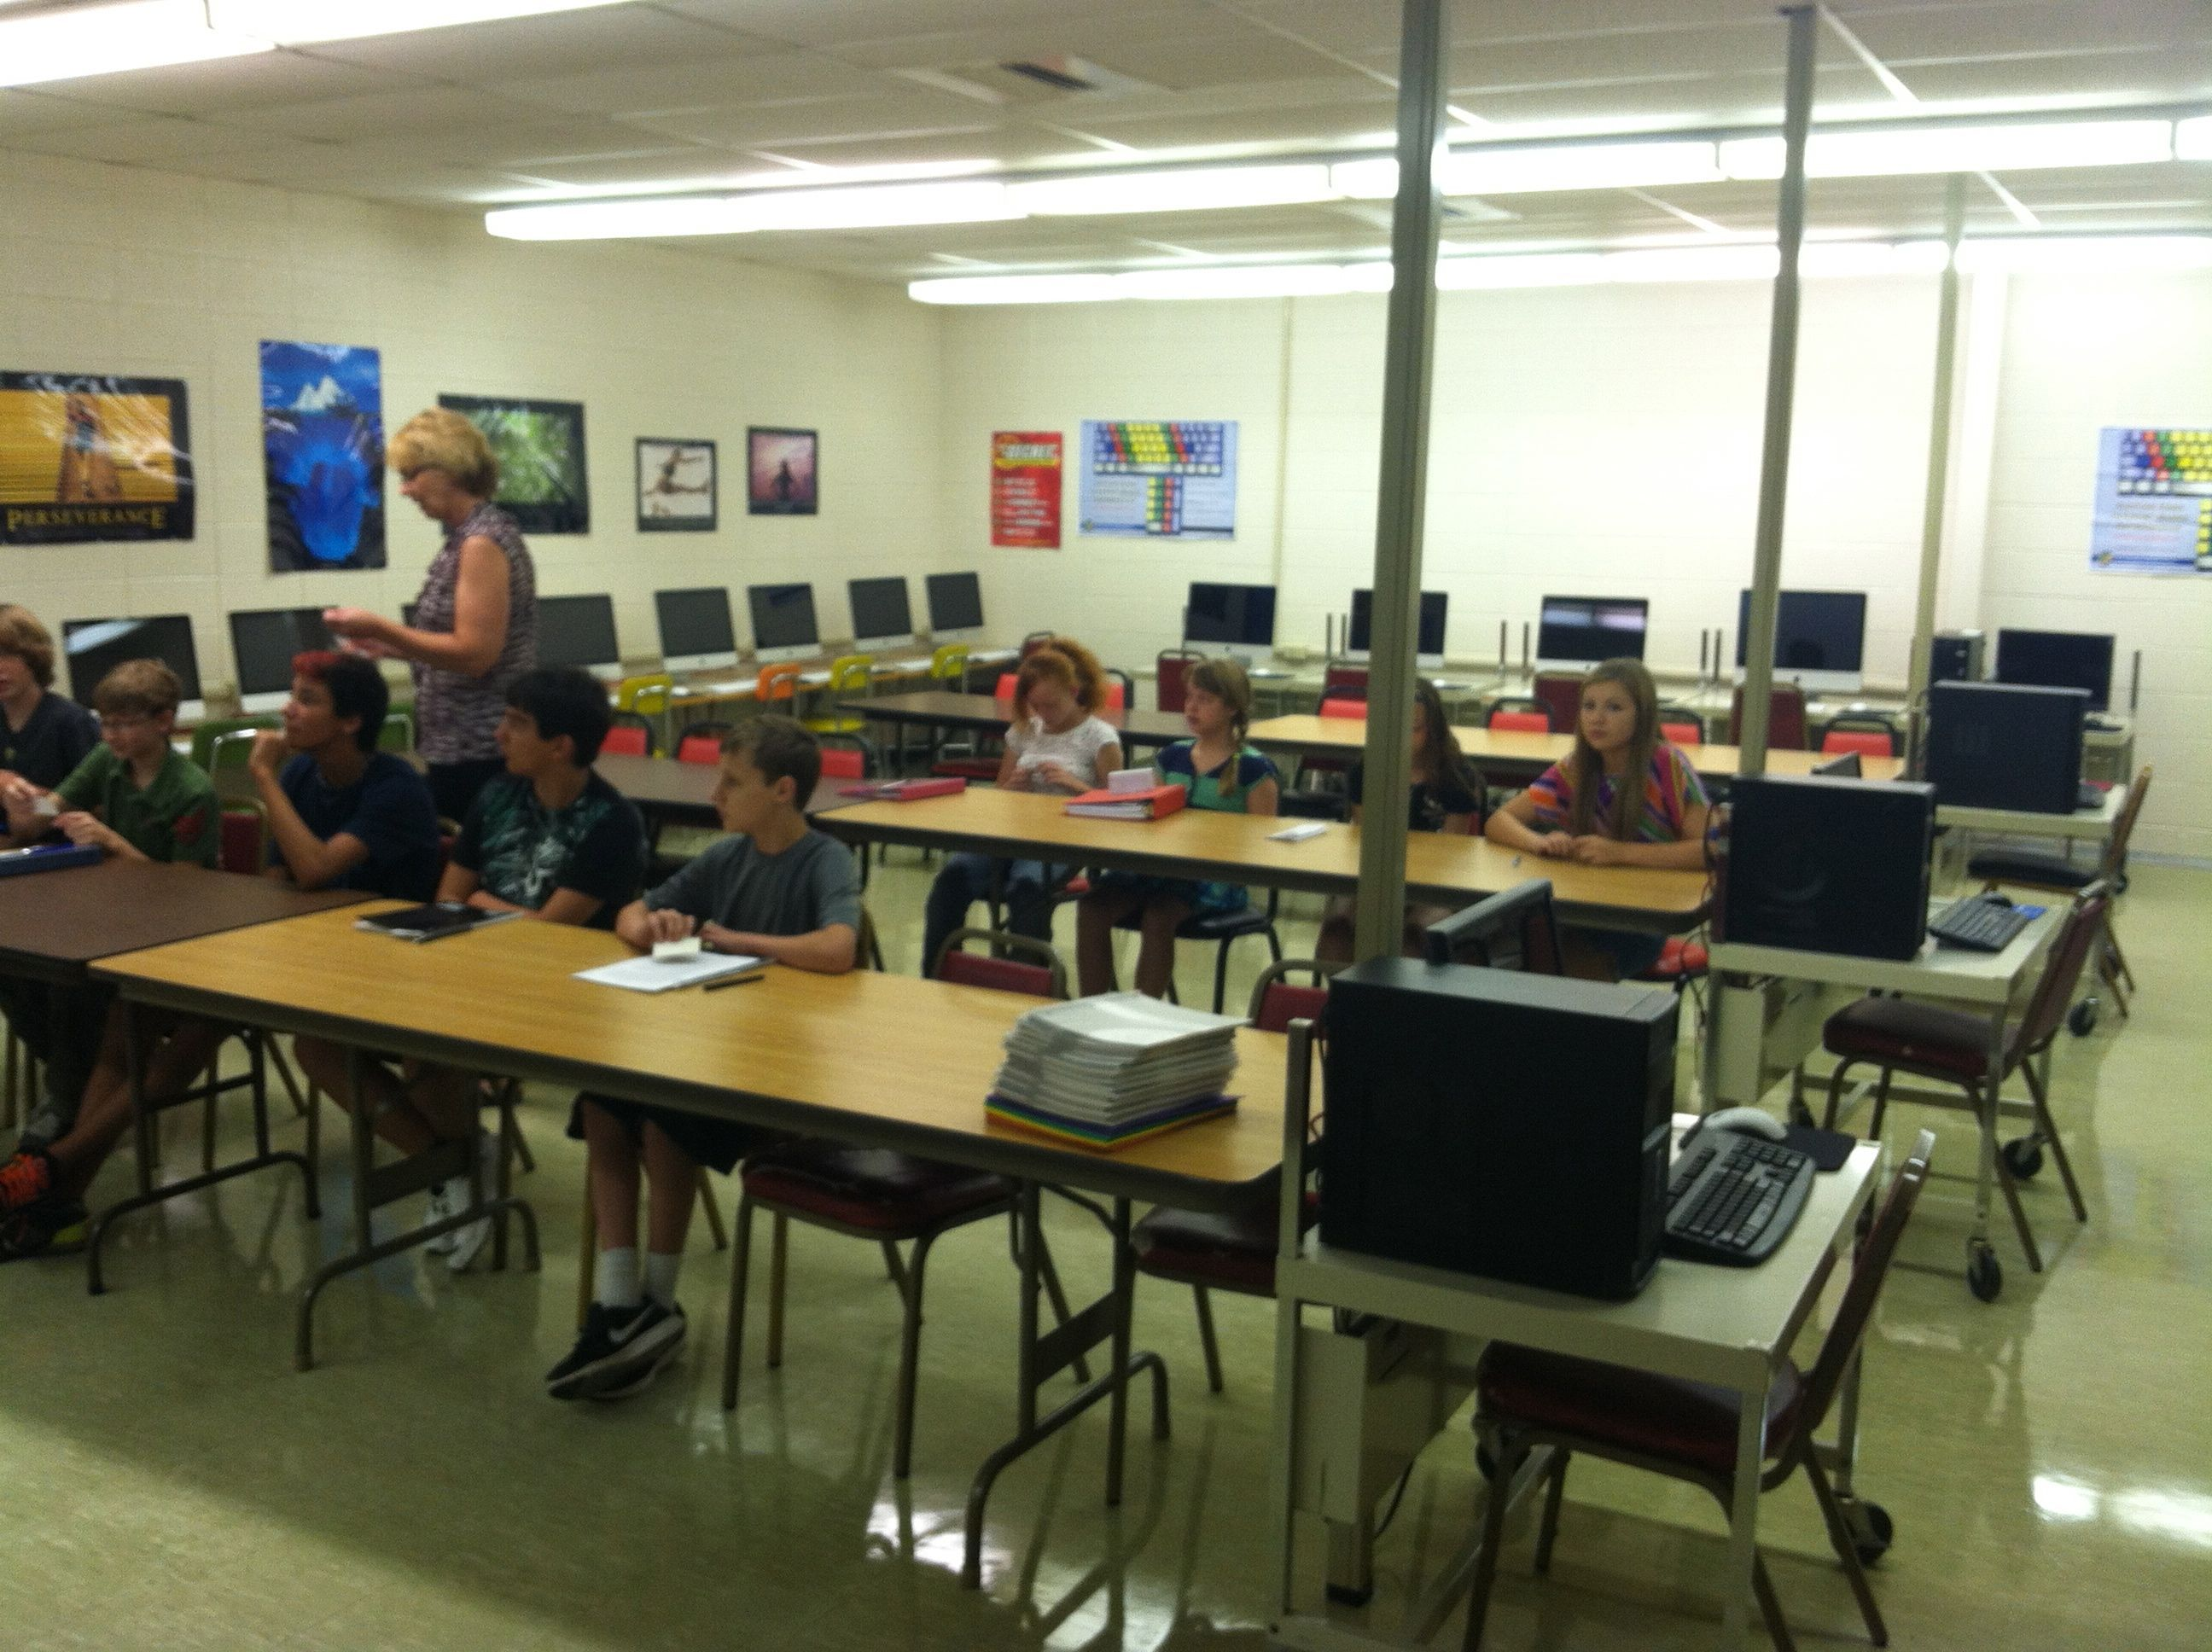 Middle School Computer Class With Images